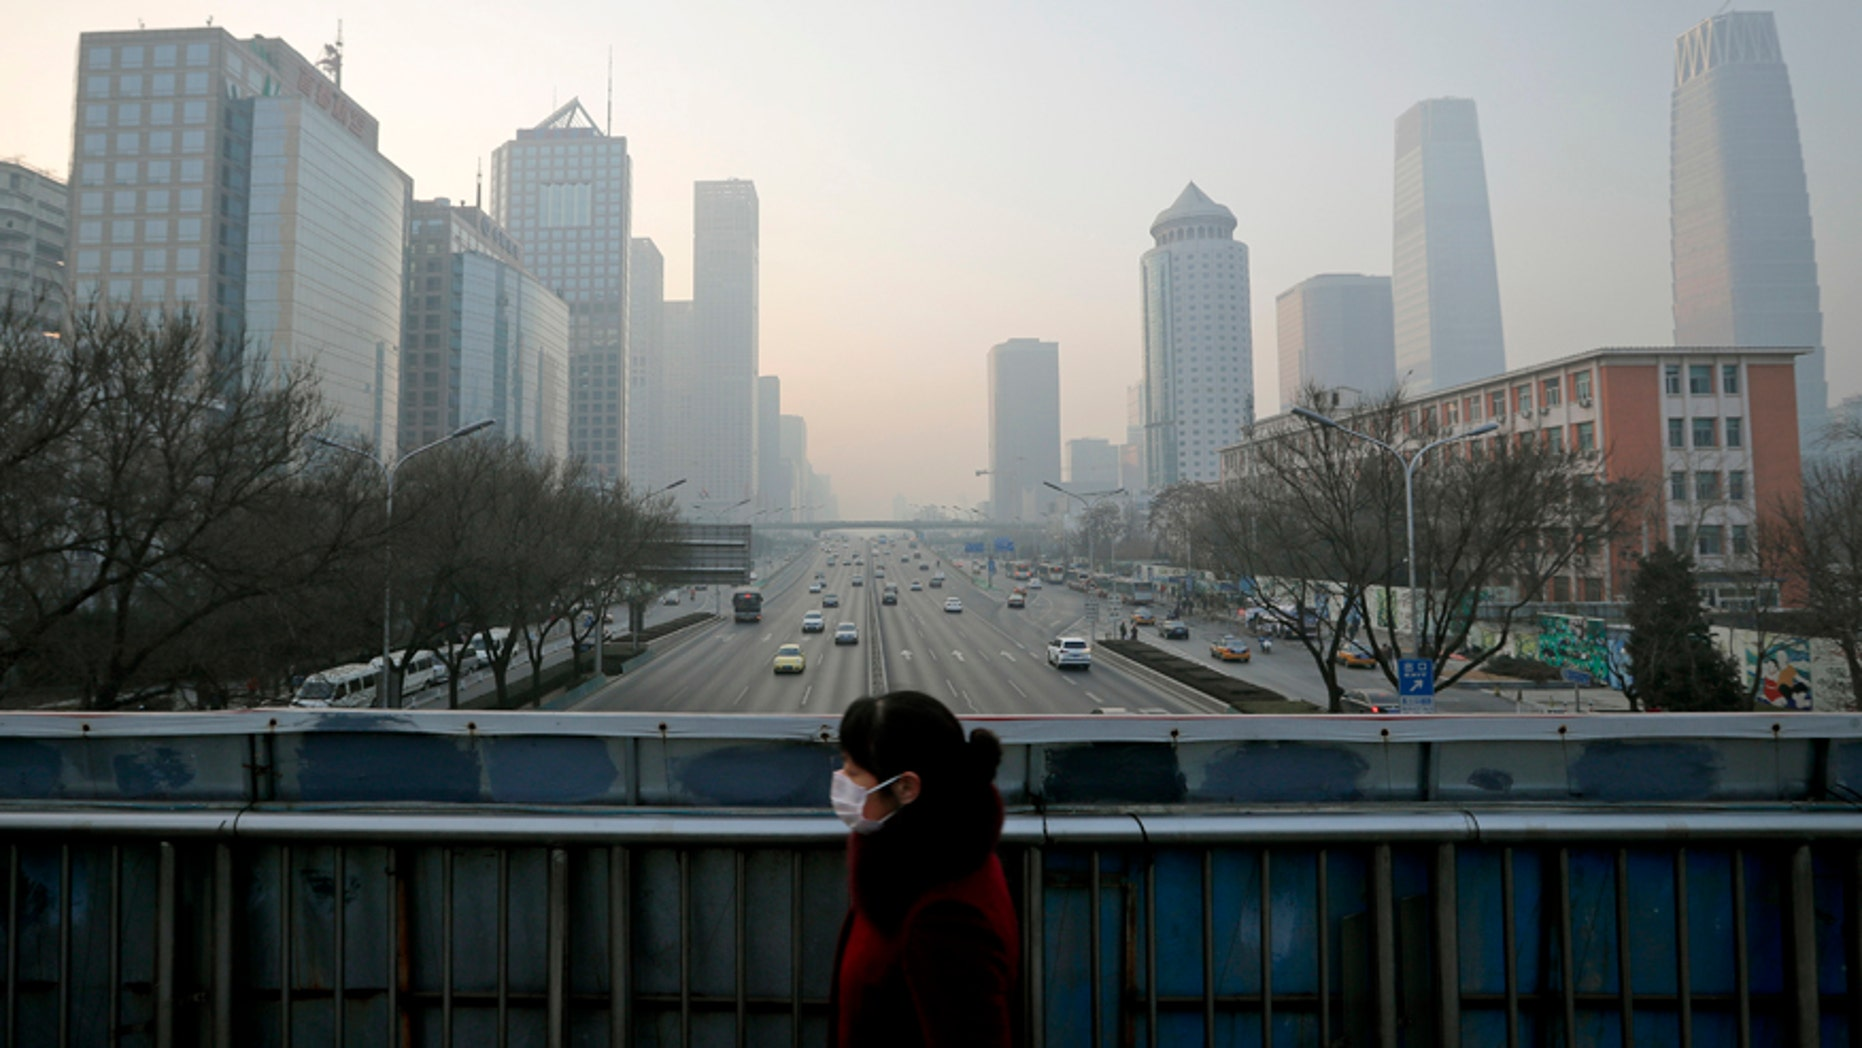 A woman wearing a mask for protection against air pollution walks on a pedestrian overhead bridge in Beijing as the capital of China is shrouded by heavy smog Monday, Dec. 19, 2016.